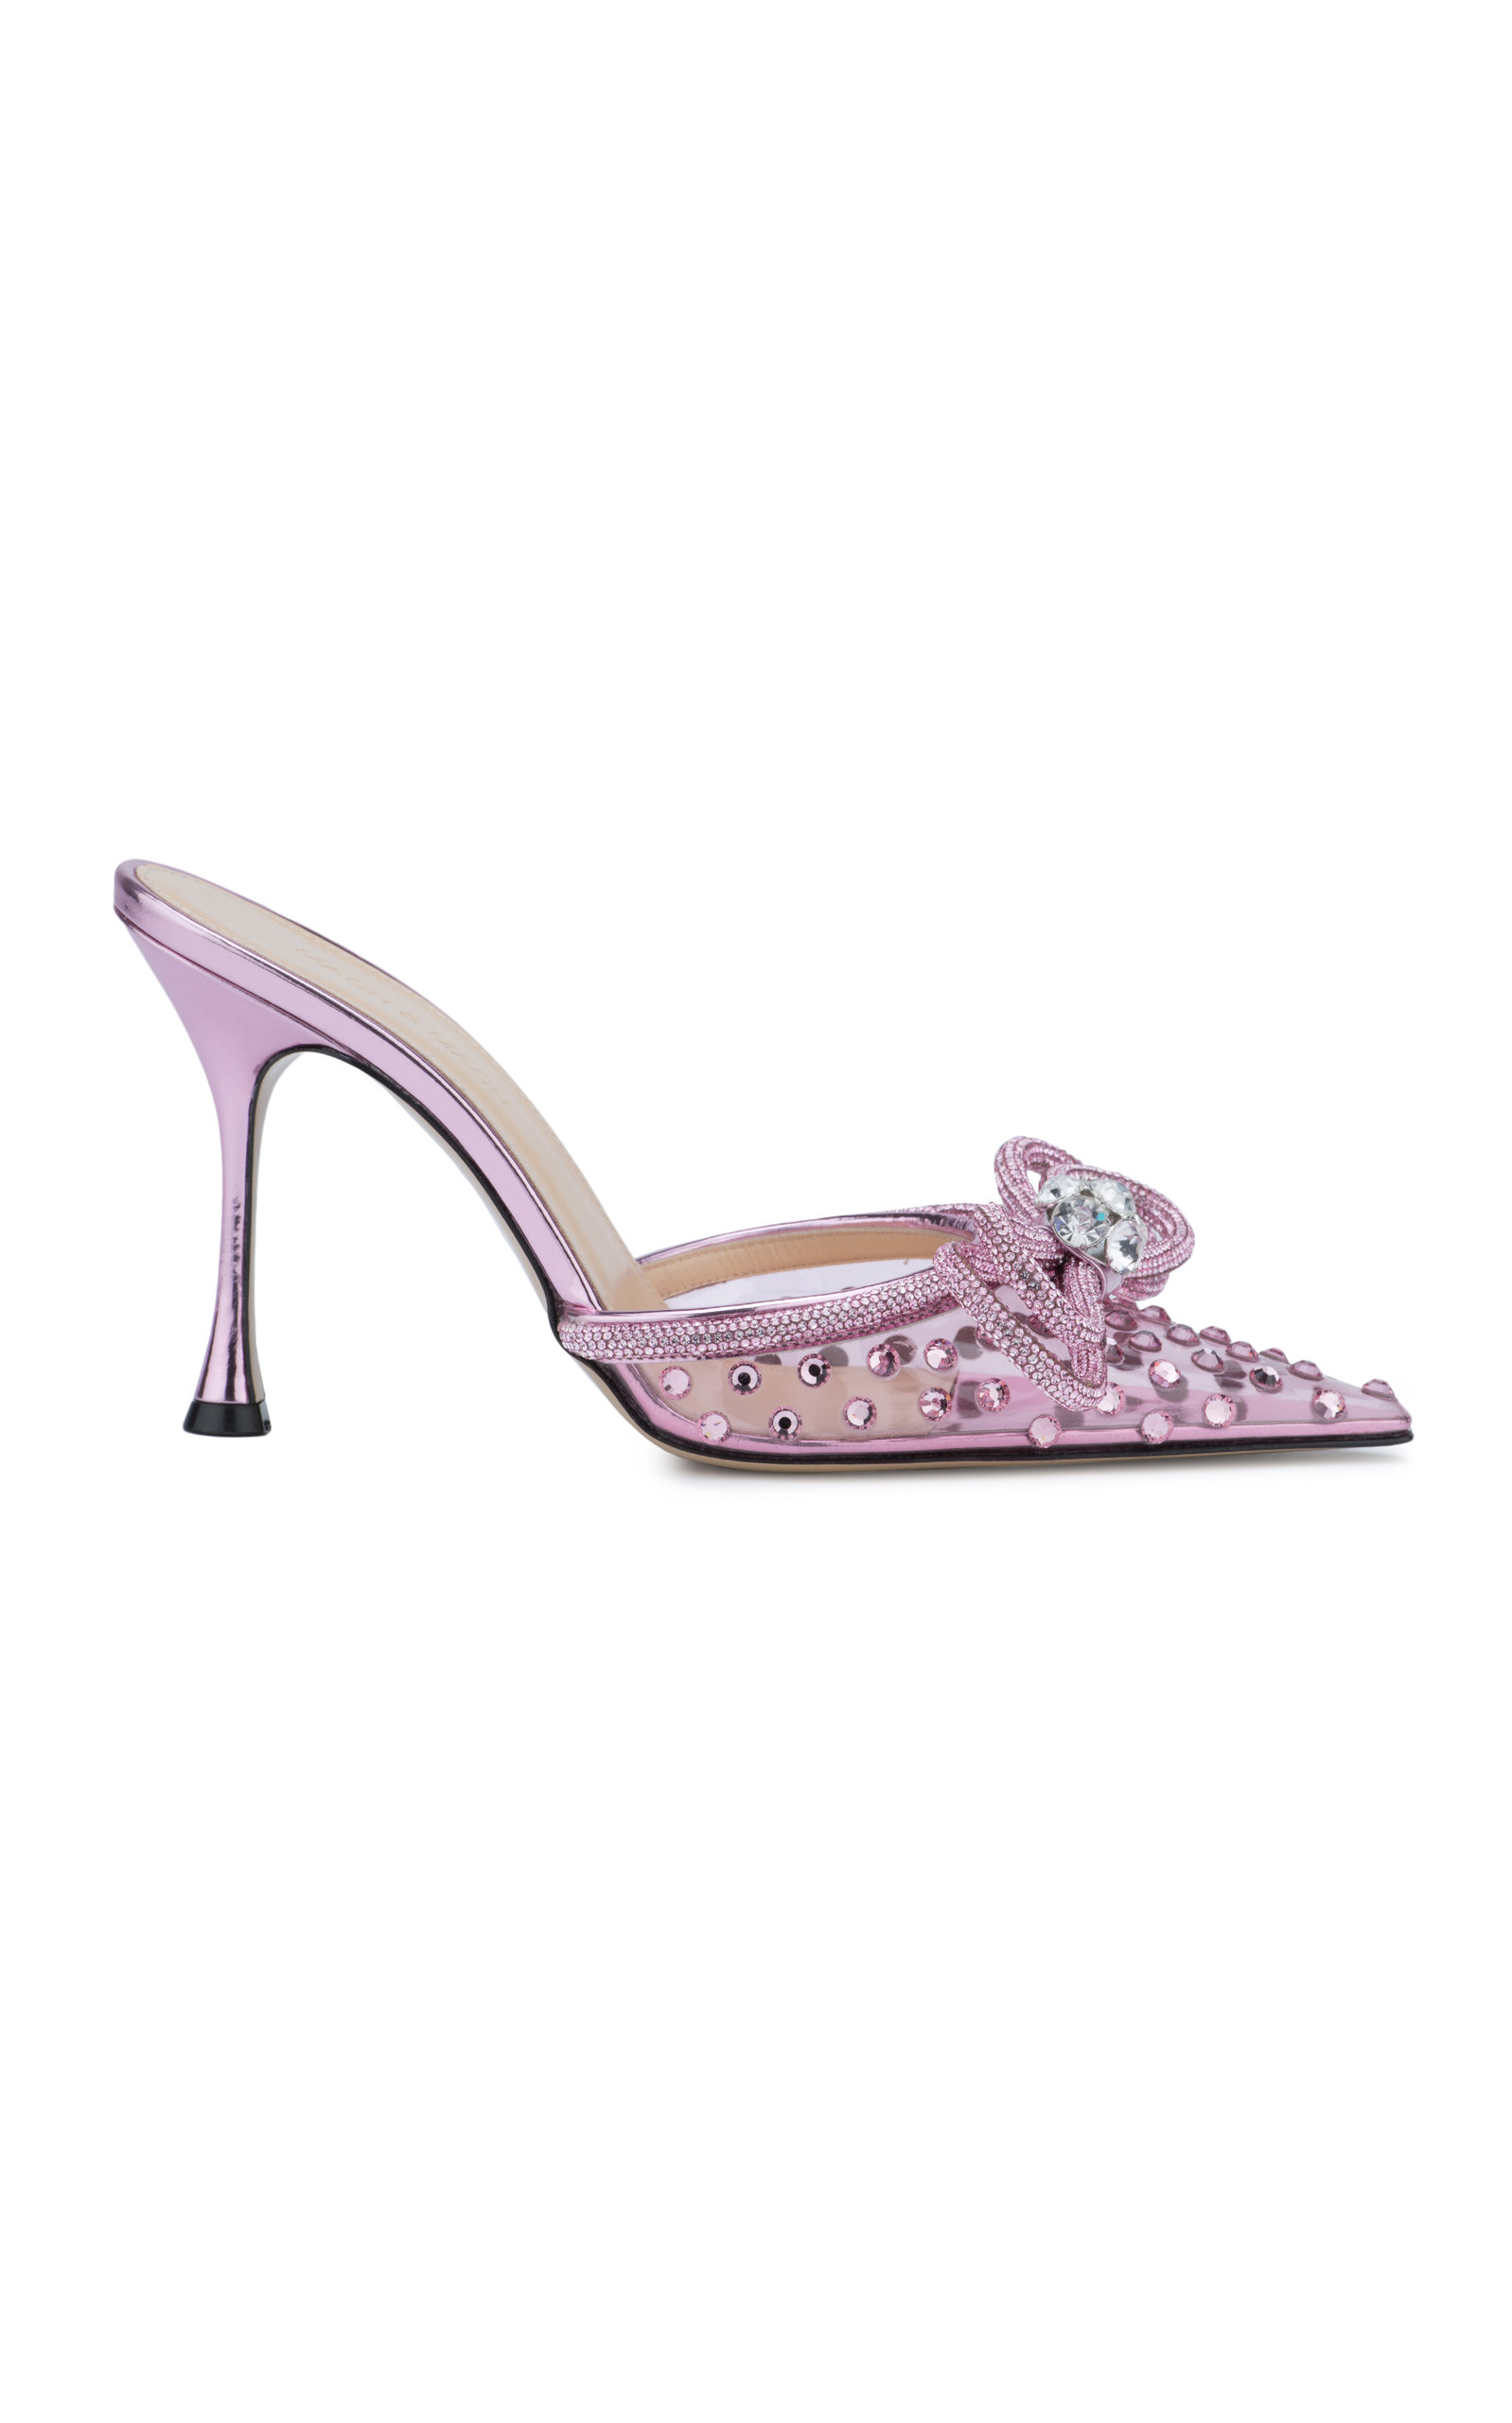 Women's Double-Bow Crystal-Embellished PVC Mules